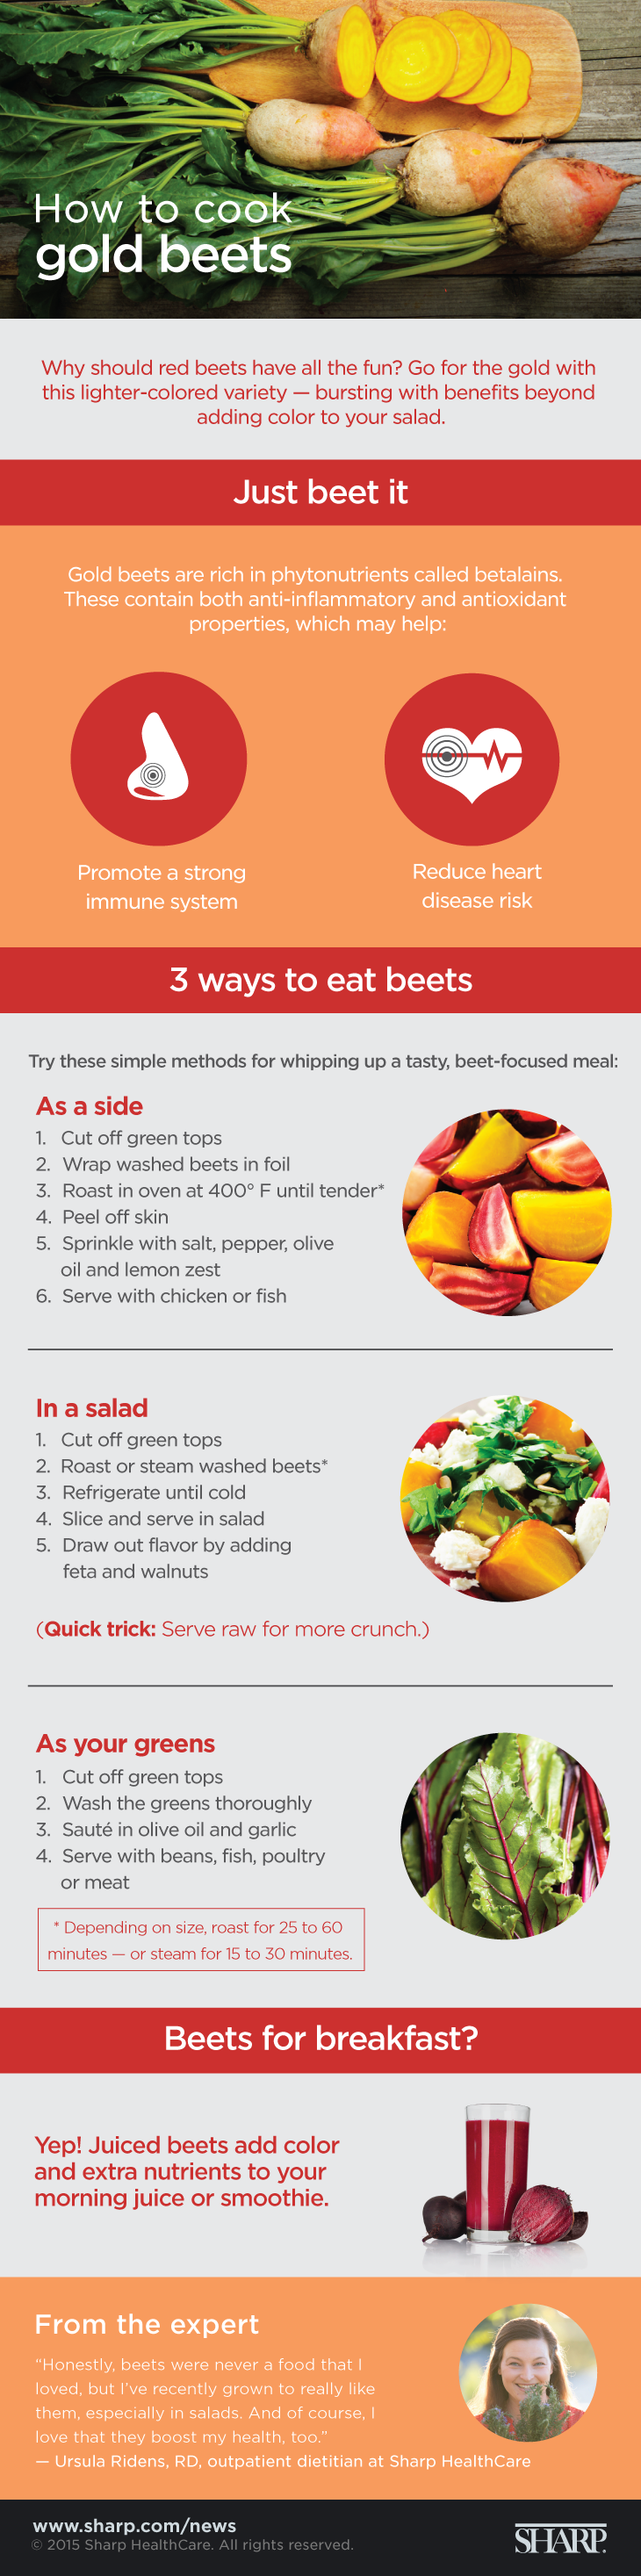 How to cook gold beets